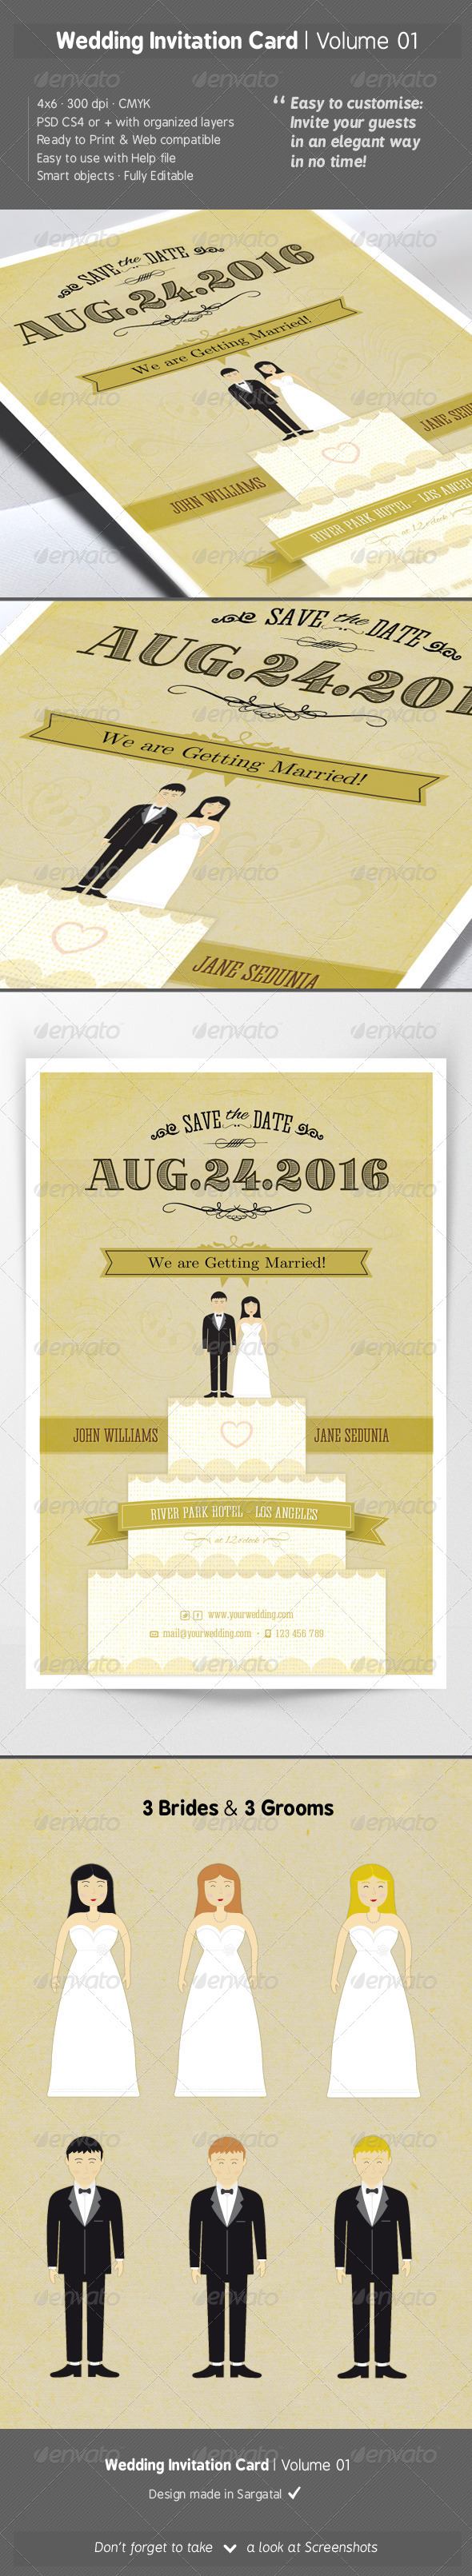 Wedding Invitation Card - Volume 01 - Weddings Cards & Invites